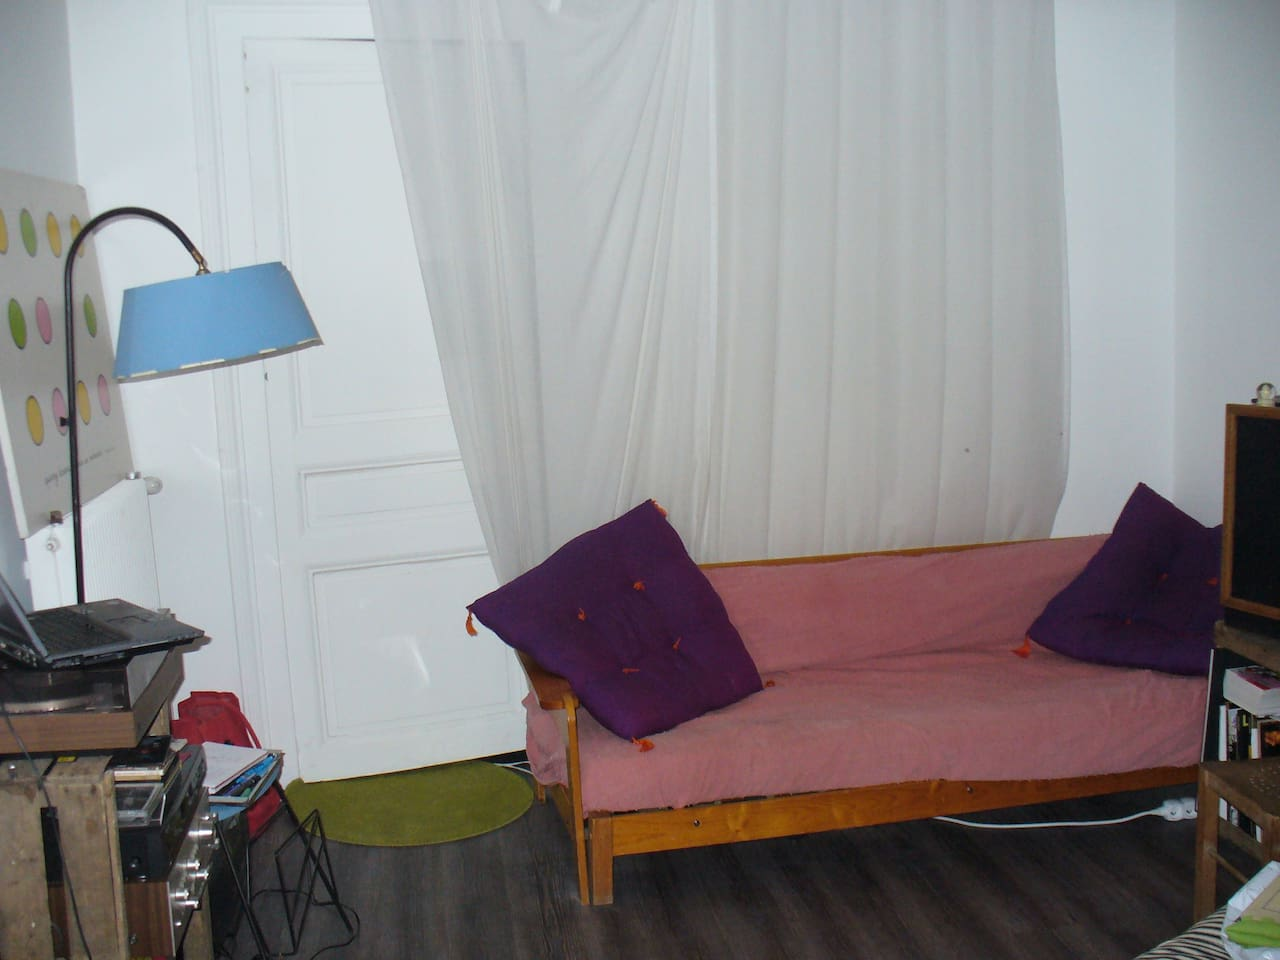 Le canapé dans le salon (the couch in the room)